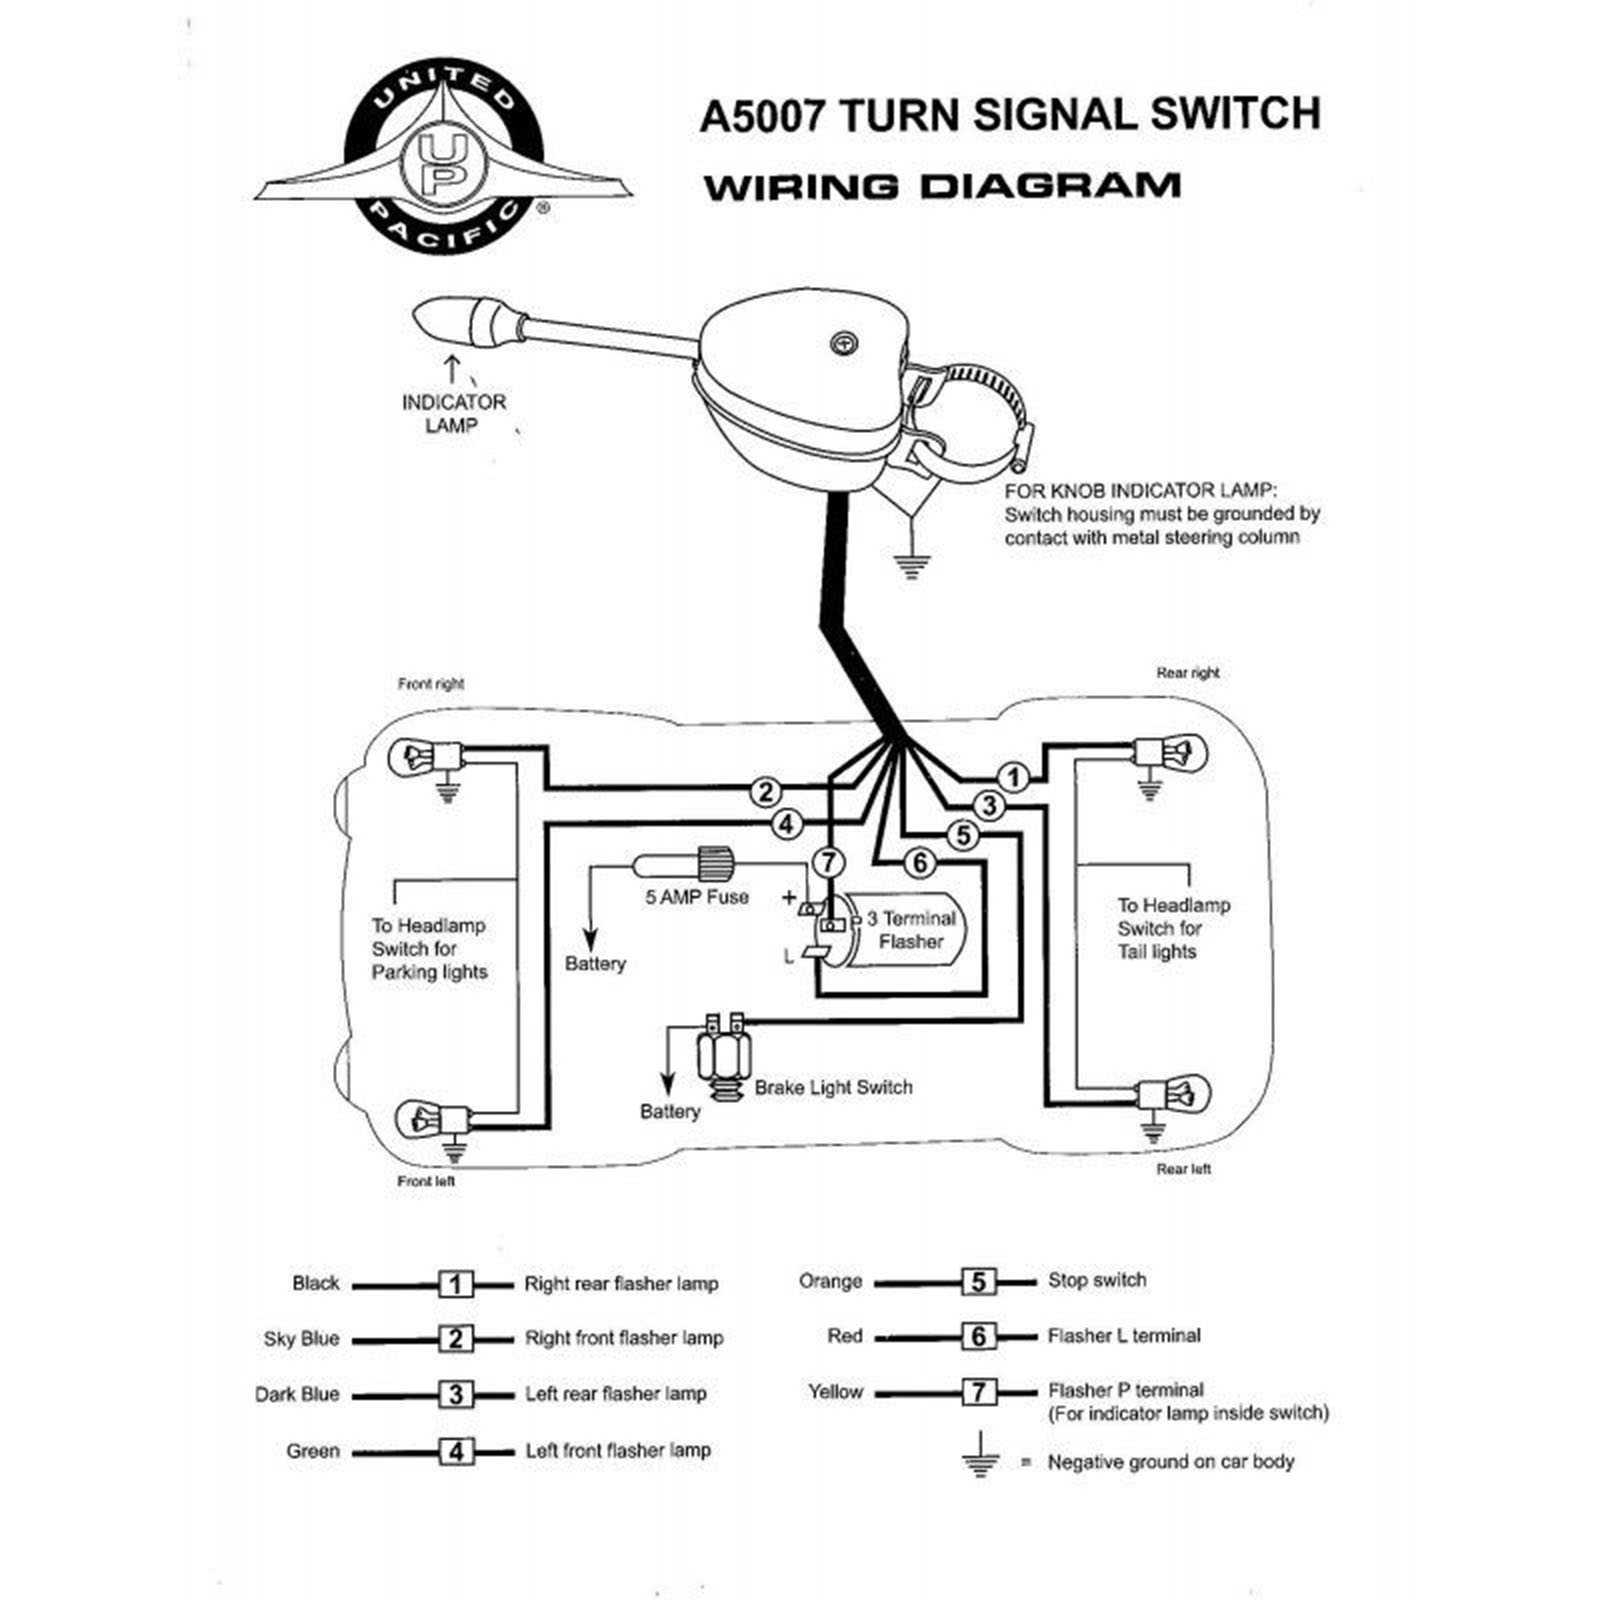 hight resolution of universal turn signal switch wiring diagram vintage hot rod wiring vintage turn signal wiring diagram vintage